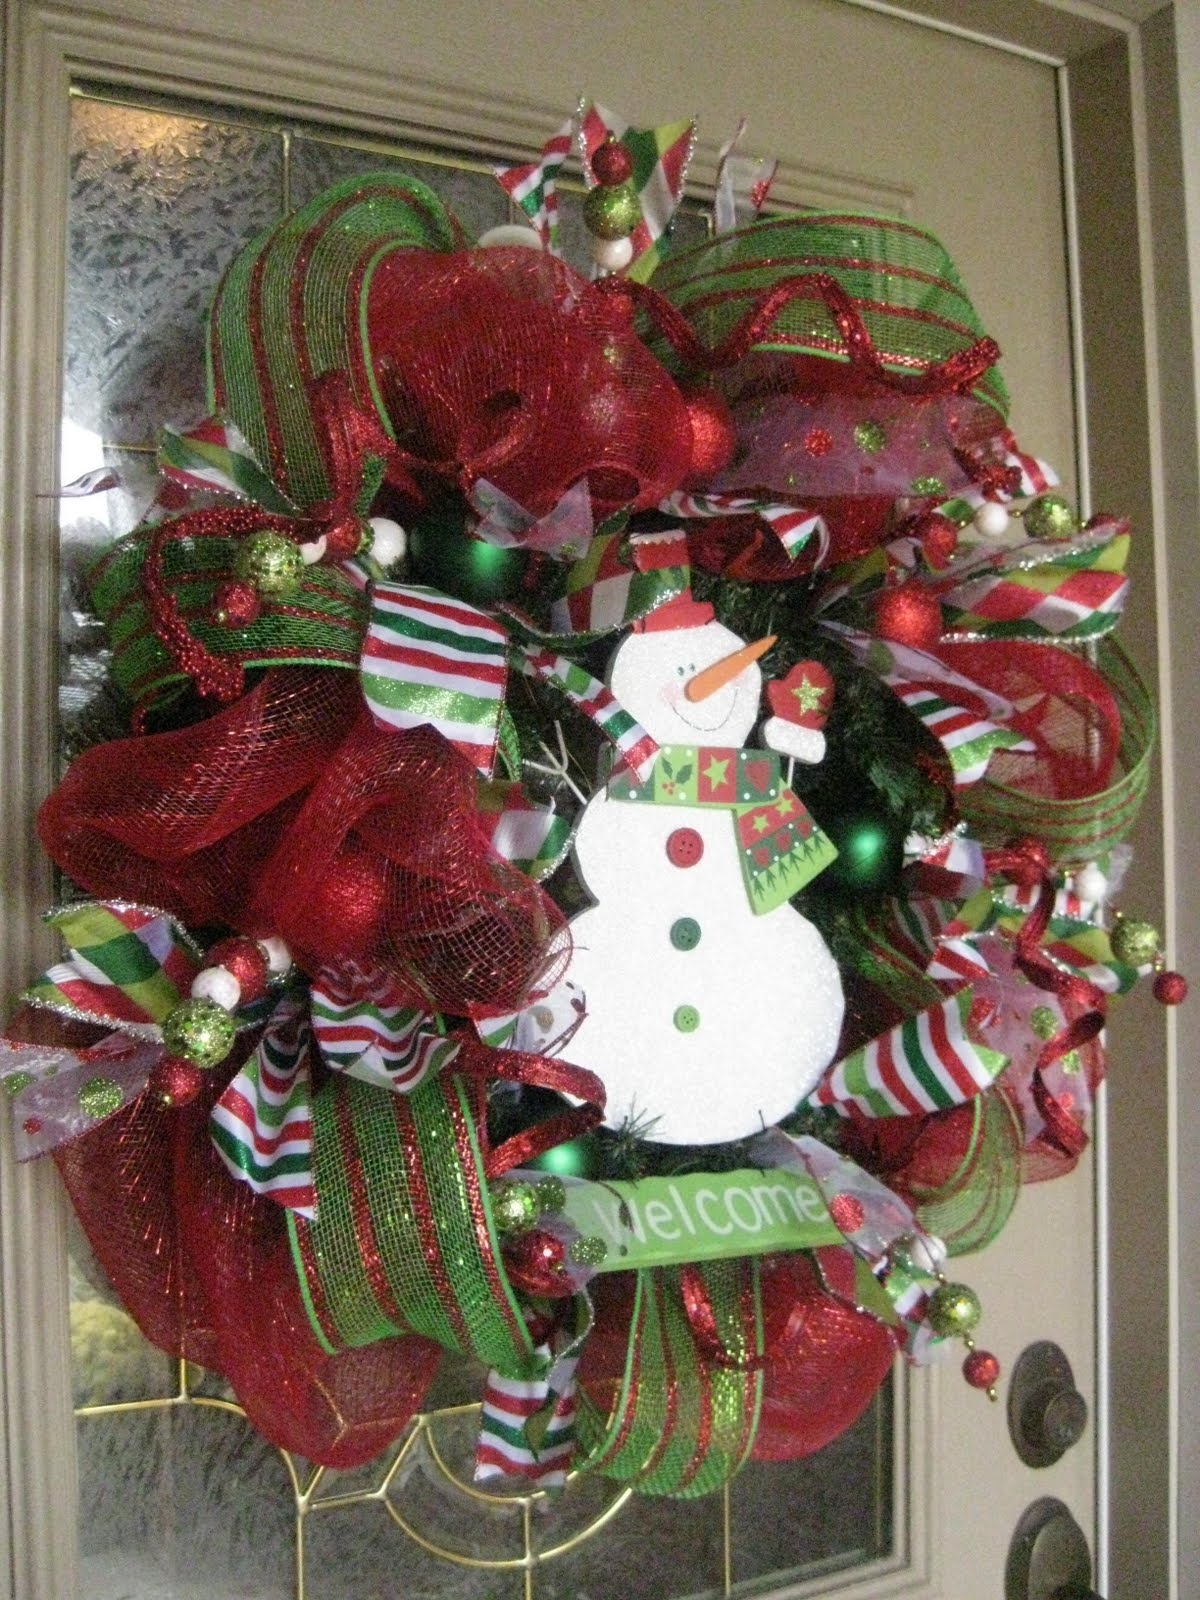 Geo Mesh Wreath Ideas http://kristenscreationsonline.blogspot.com/2011/11/christmas-mesh-wreath-tutorial.html